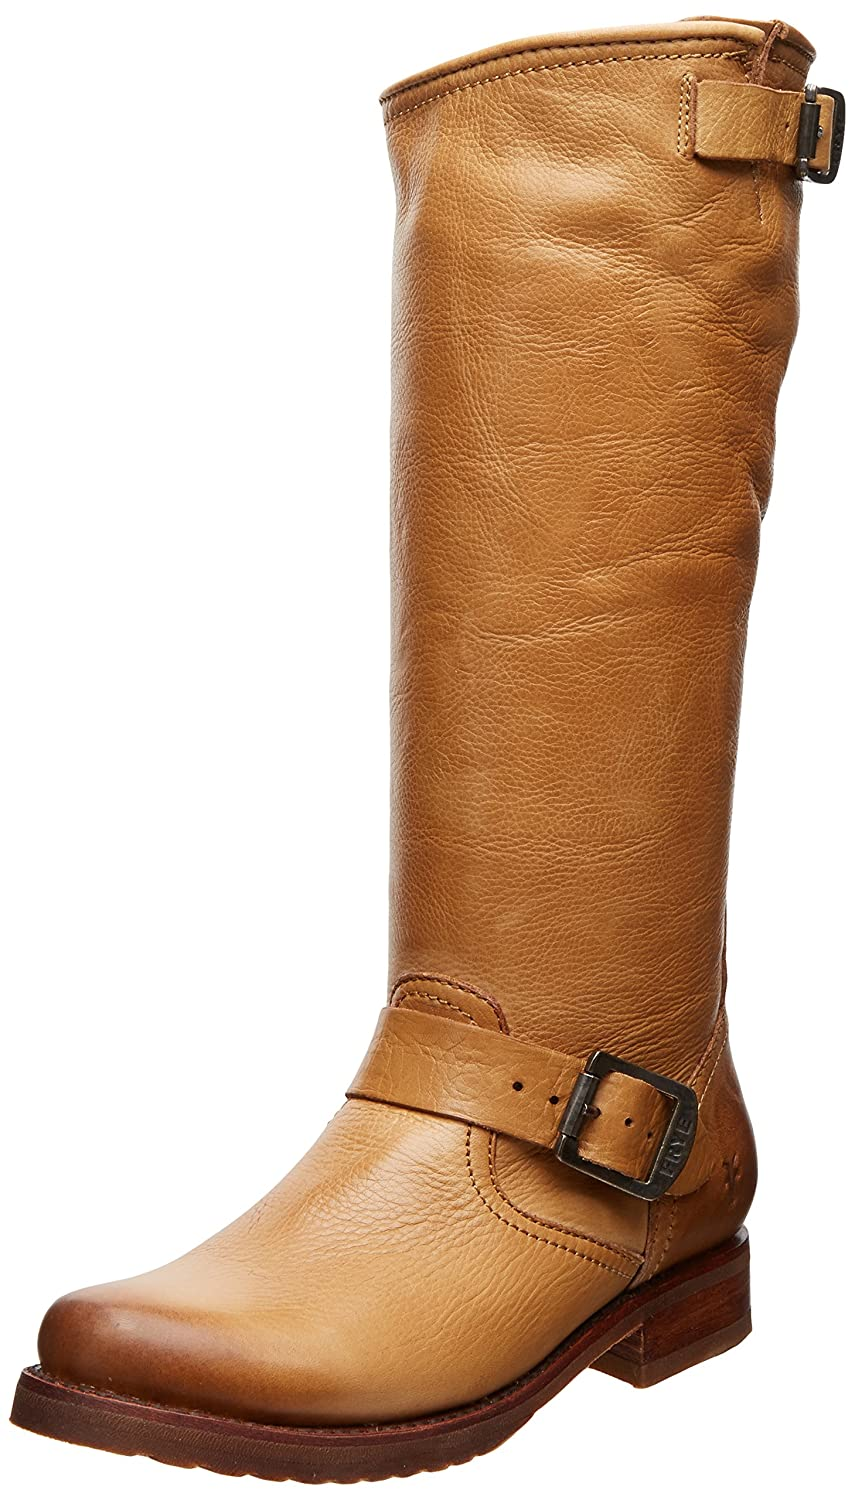 FRYE Women's Veronica Slouch Boot B008BULKE6 6.5 M US|Camel Soft Vintage Leather-76602